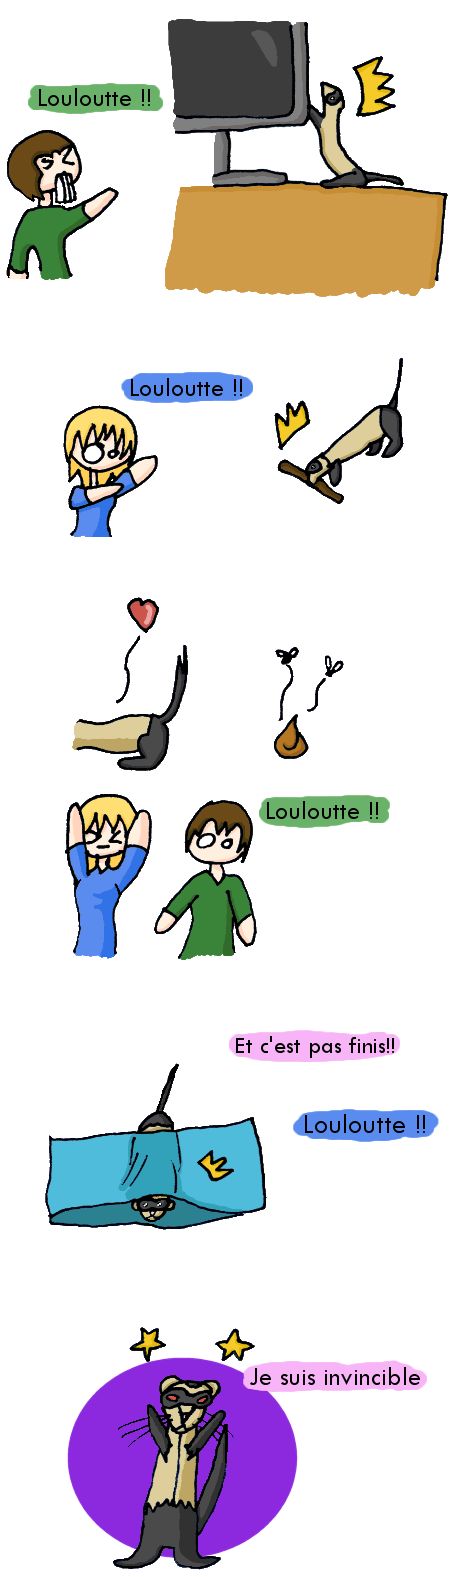 loulouttesatage2